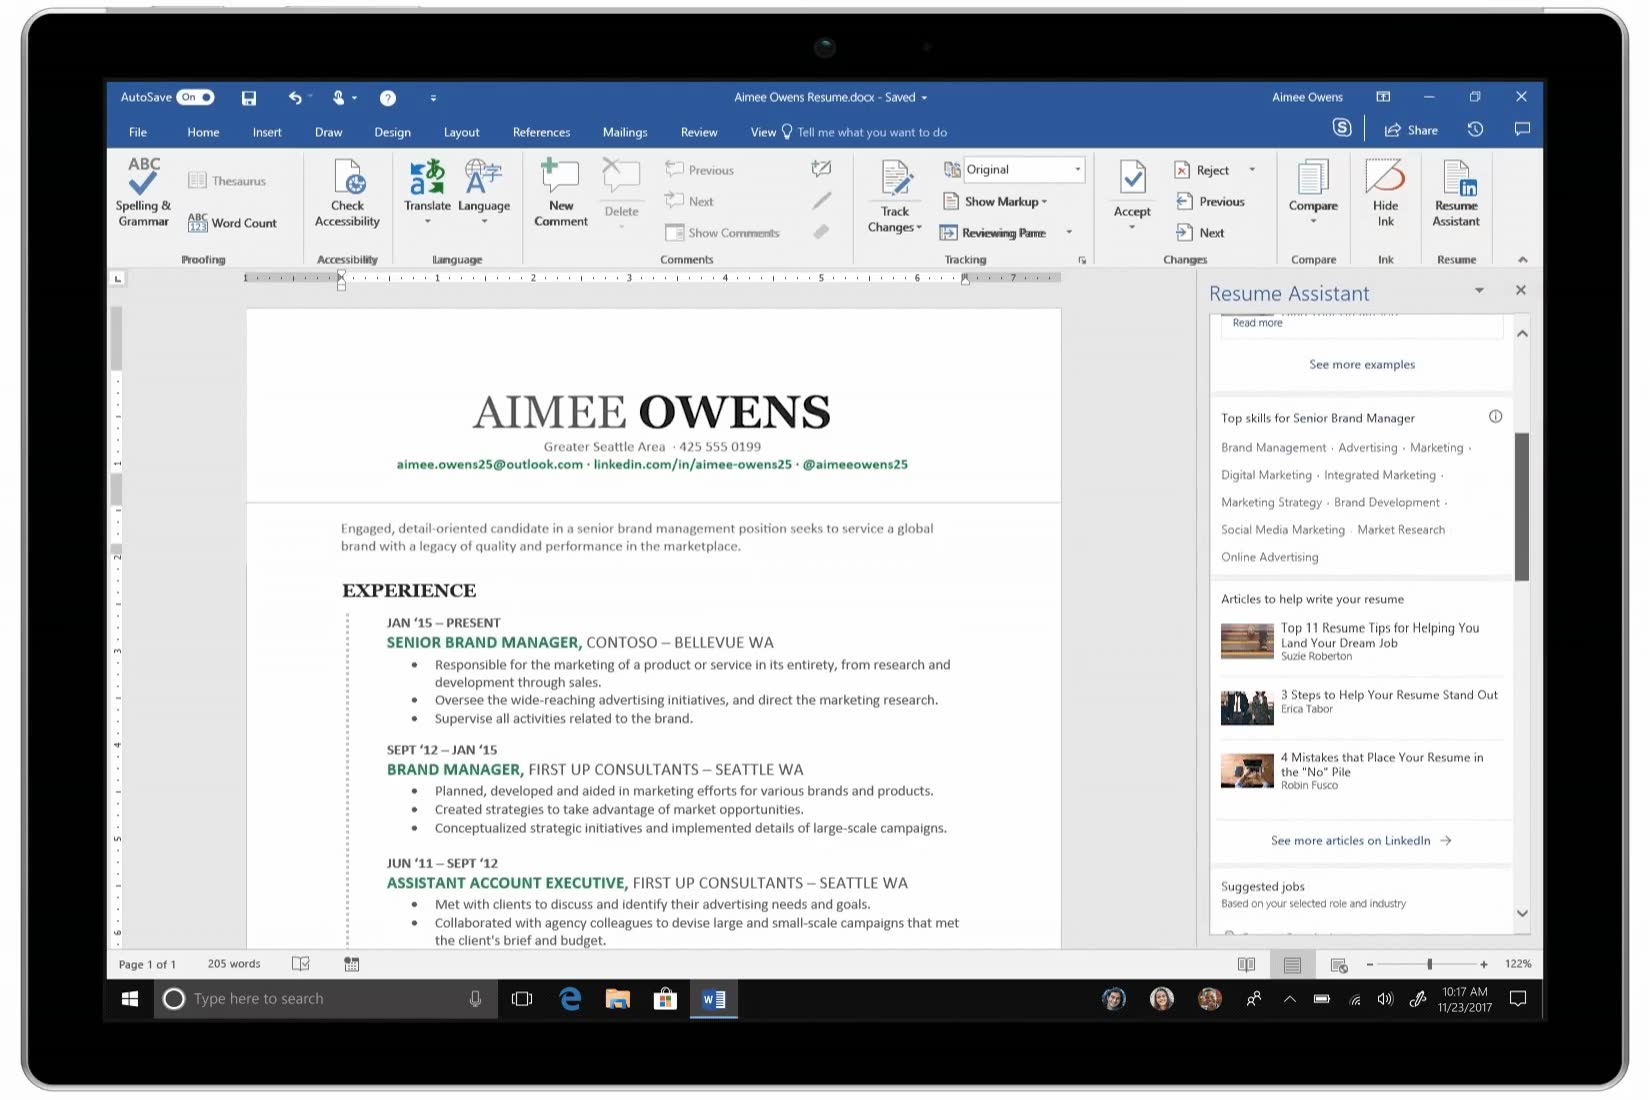 Buy Office 365 Home - Microsoft Store